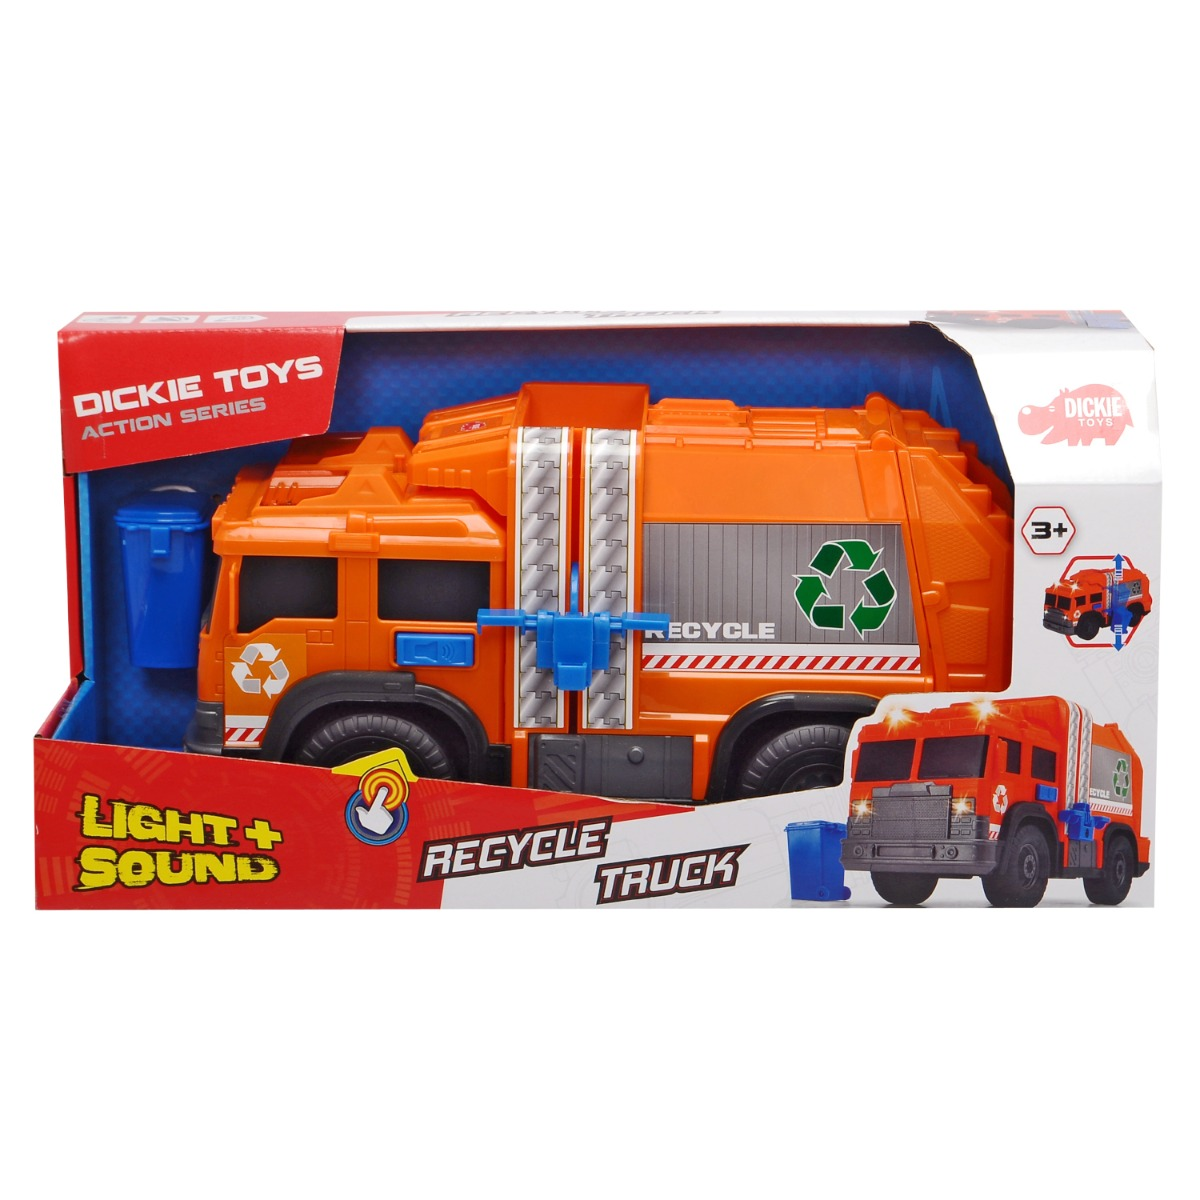 Masinuta de reciclare Dickei Toys Recycle Truck imagine